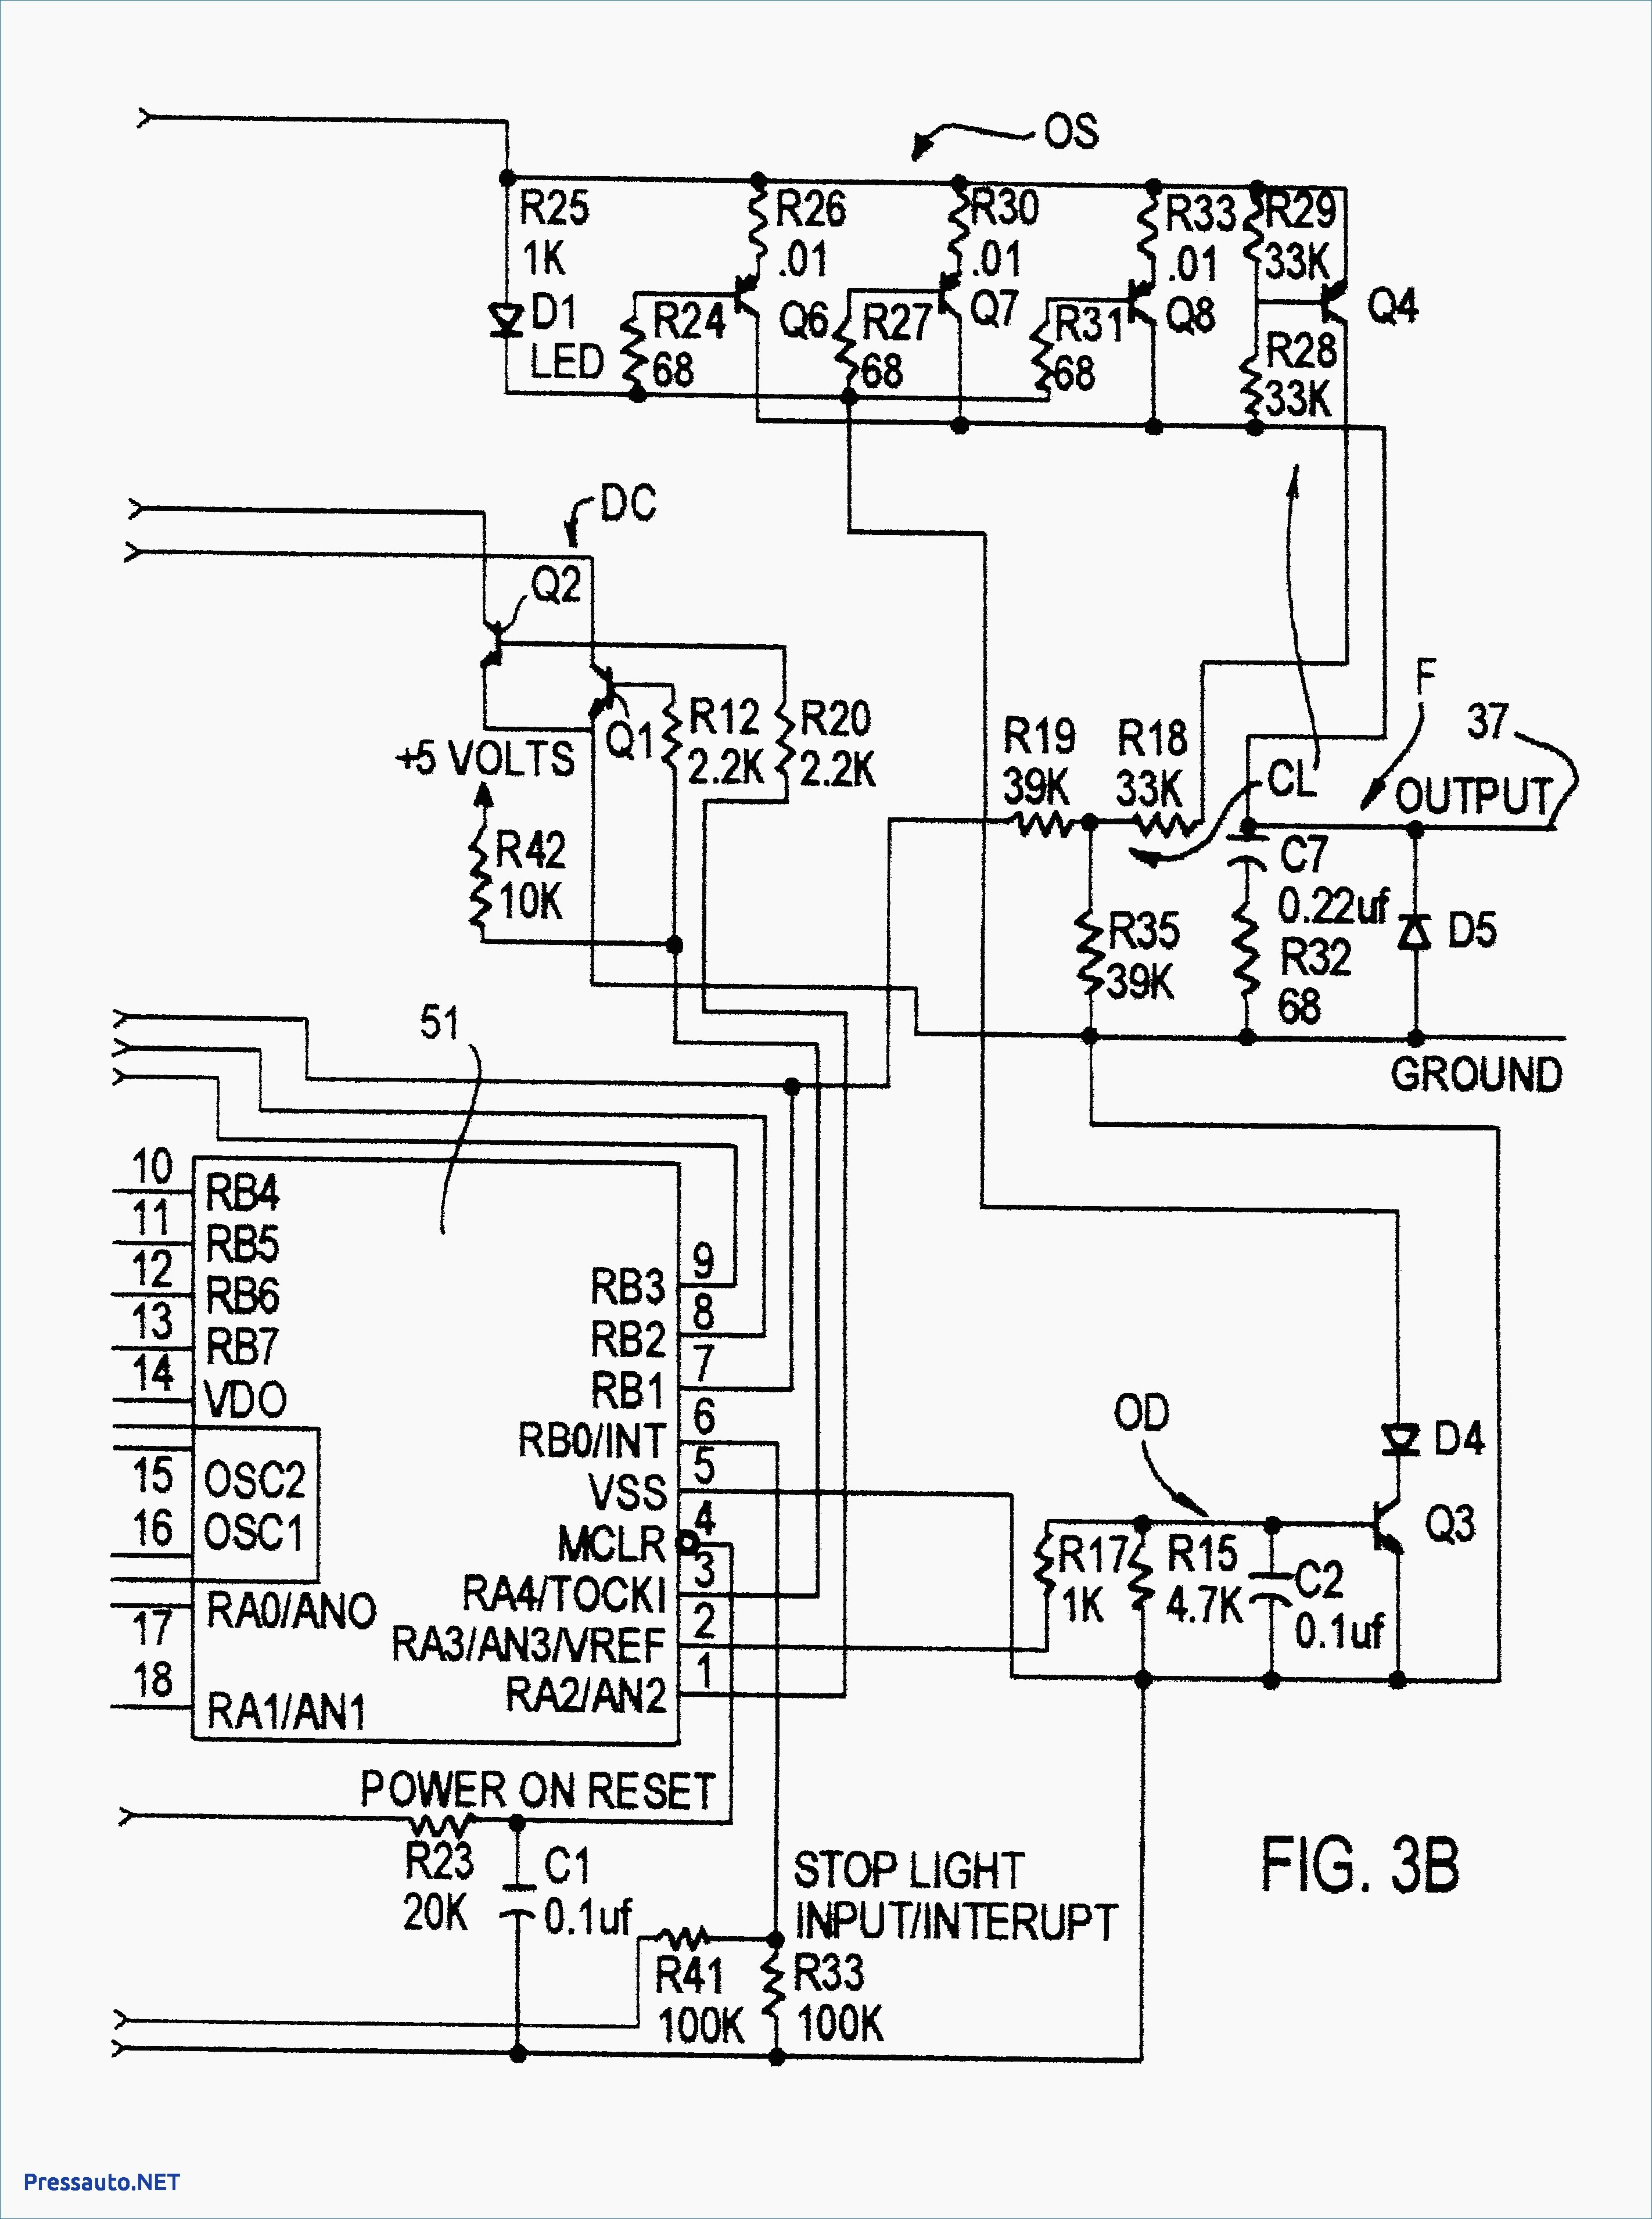 Electric Firep Wiring Diagram For A28eo5 - Residential Electrical ...